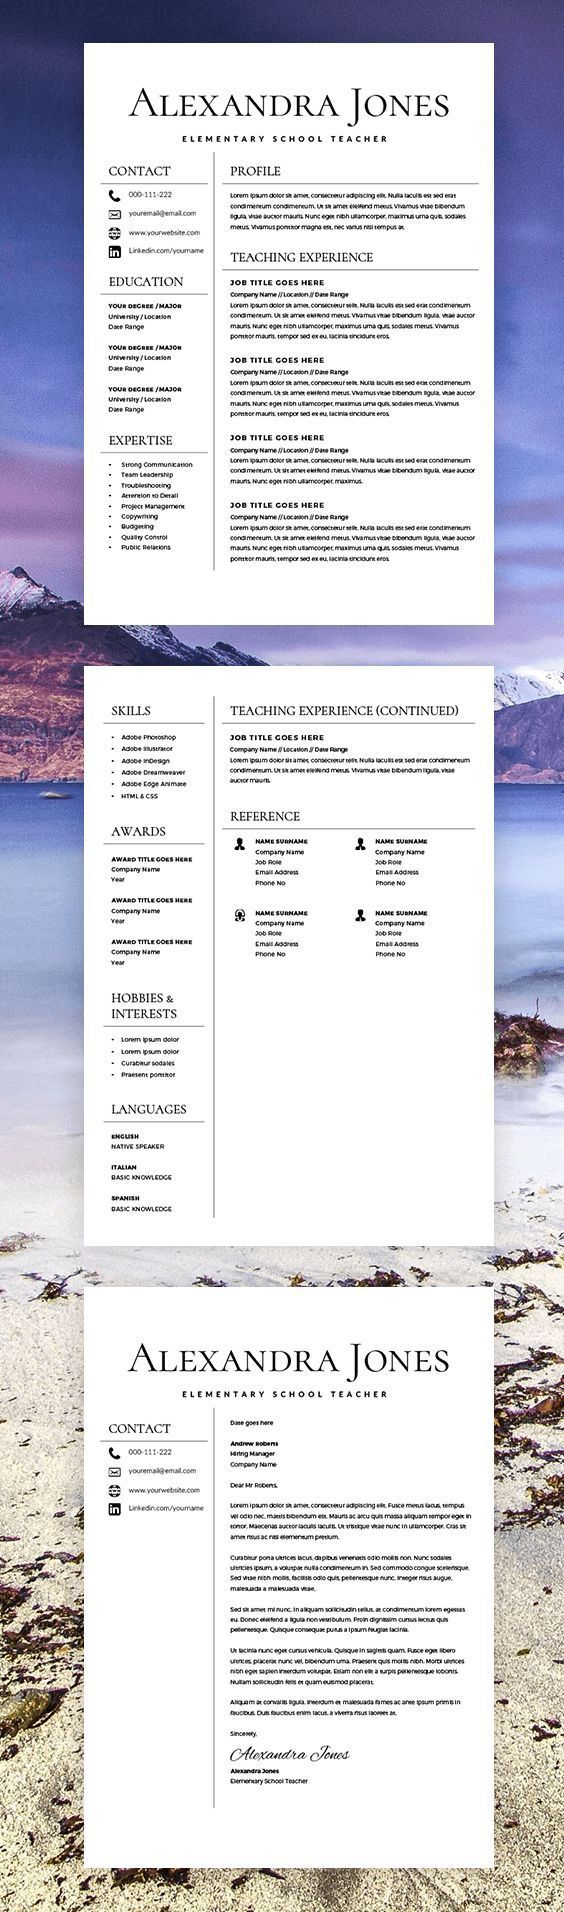 teacher resume teacher cv cv template free cover letter ms word - Free Teaching Resume Template